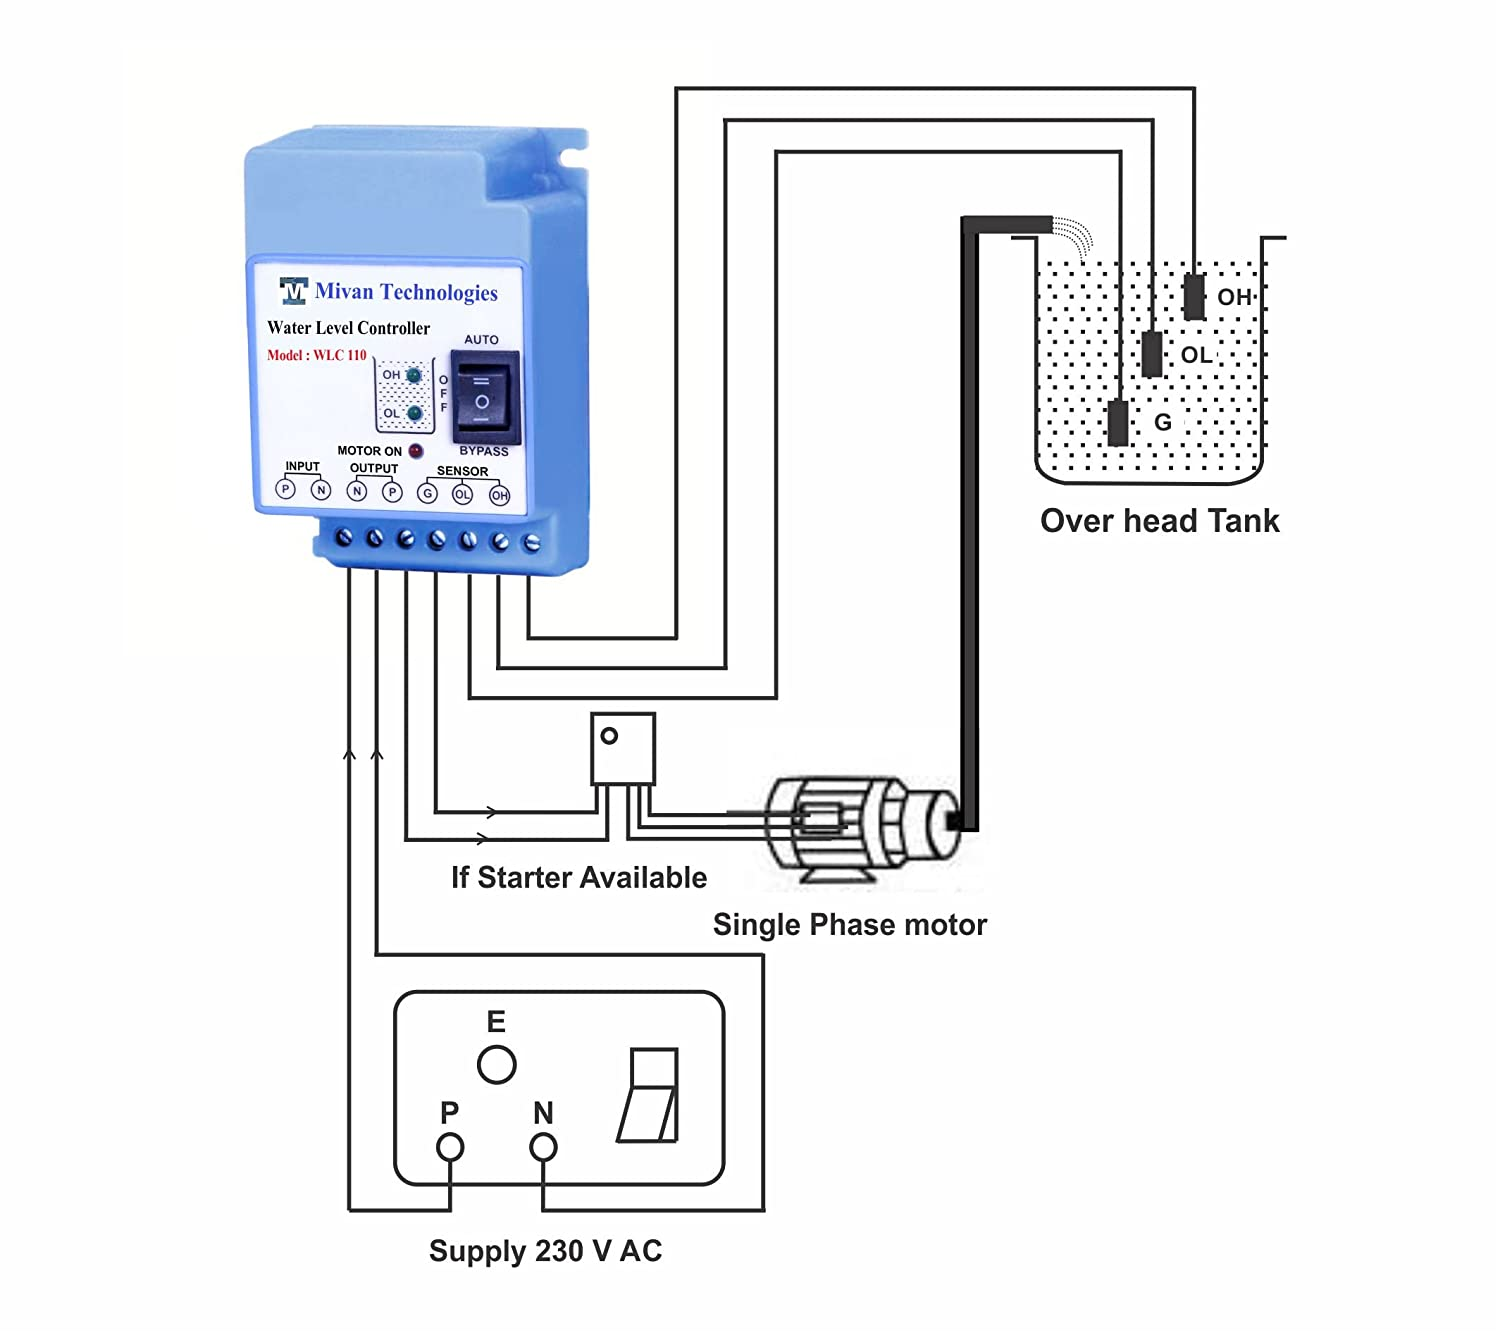 Buy Mivan Technologies Fully Automatic Water Level Controller And 3 Sensor Circuit Pictures For Their Products Sensors Supply 230vac Blue Online At Low Prices In India